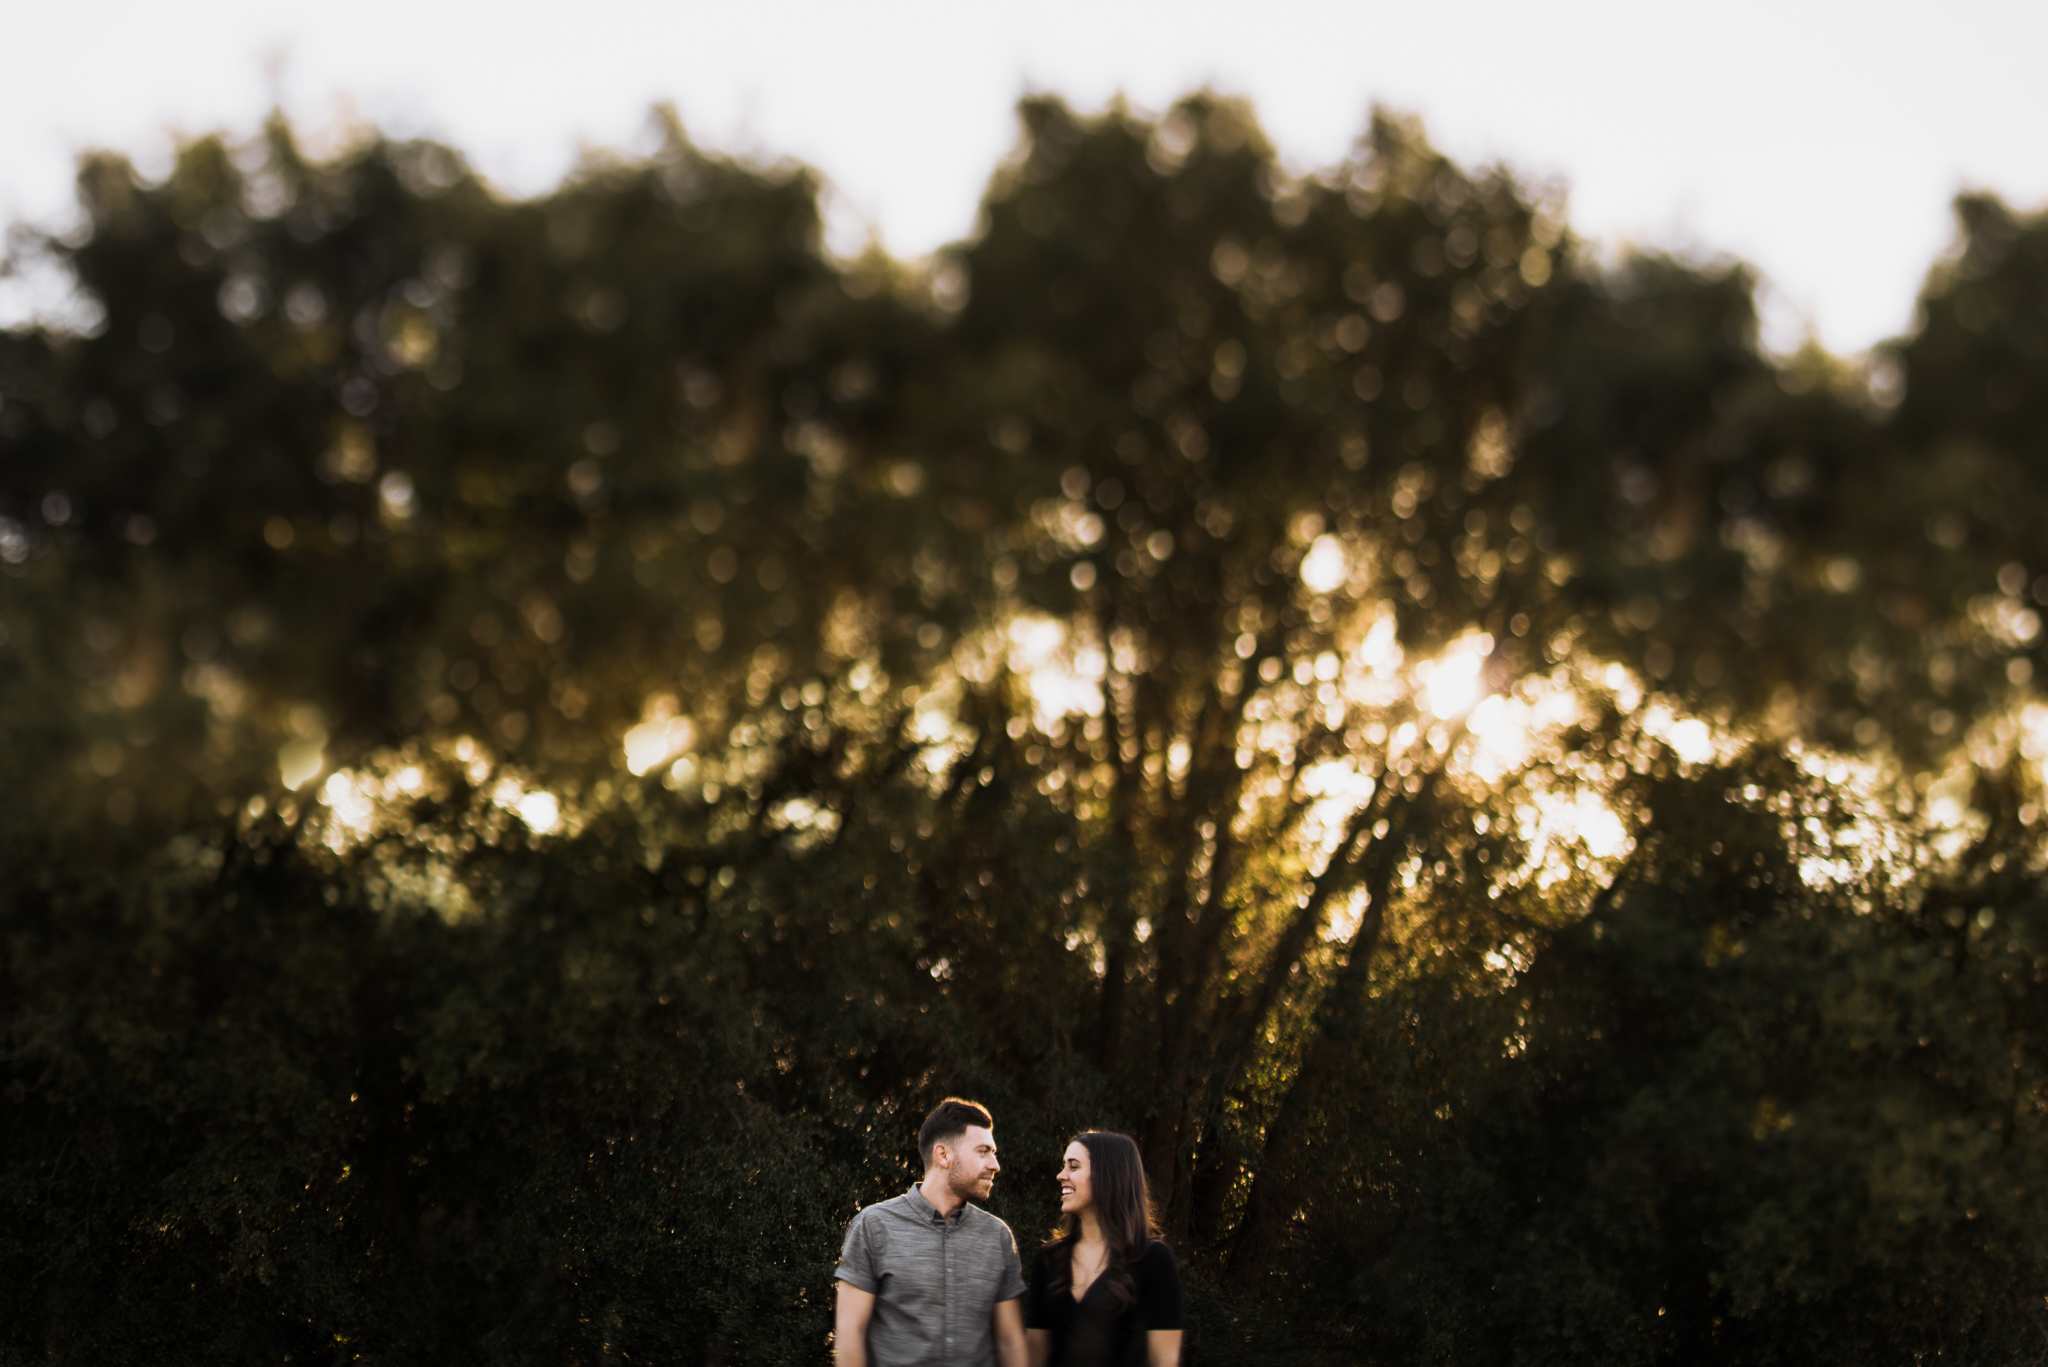 ©Isaiah-&-Taylor-Photography---Malibu-Field-Engagement,-Southern-California-Wedding-Photographer-002.jpg